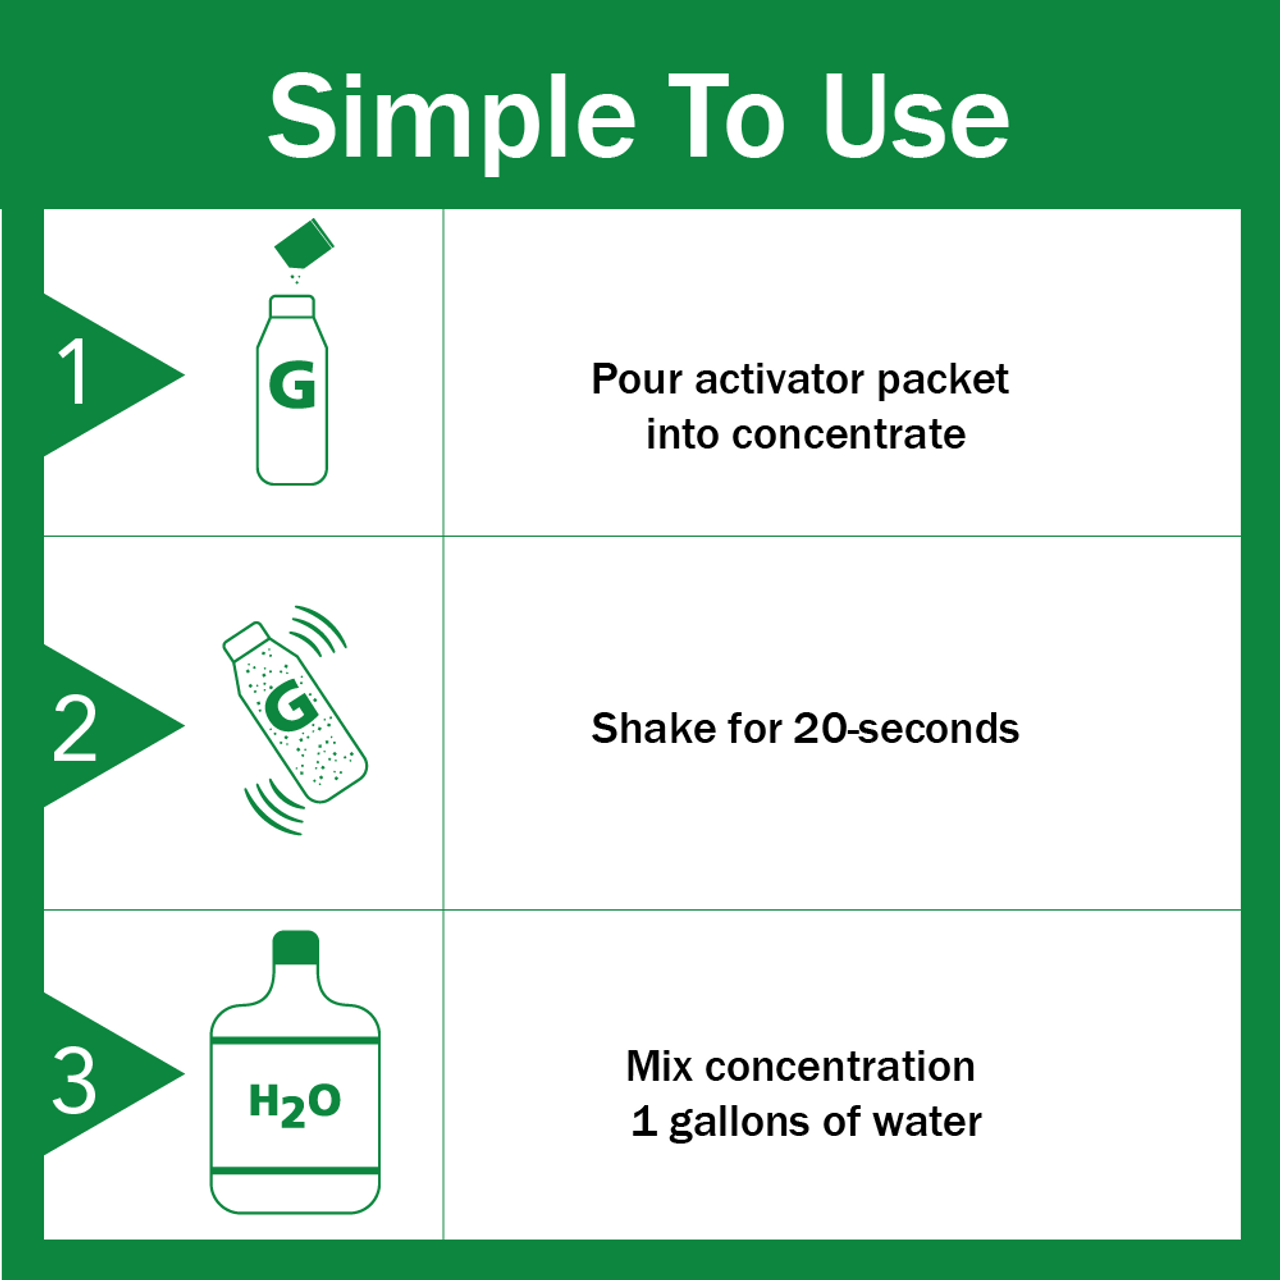 BioVex G Disinfectant: Certified Organic with No Irritations